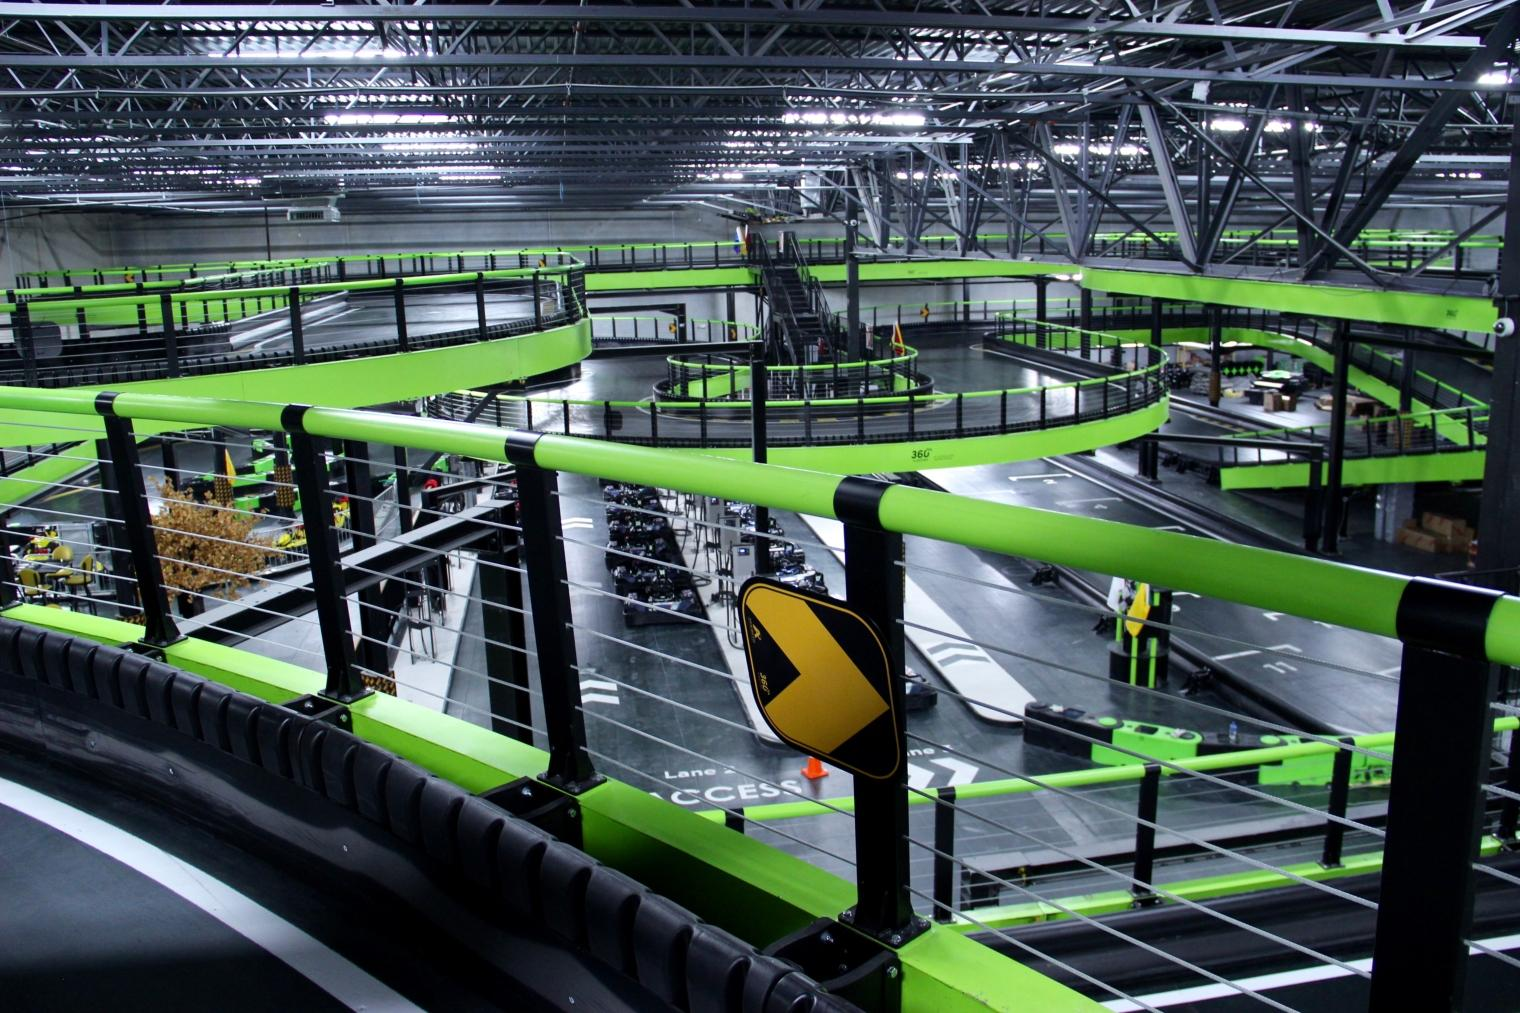 Andretti Indoor Karting Amp Games Launched New 360 Karting